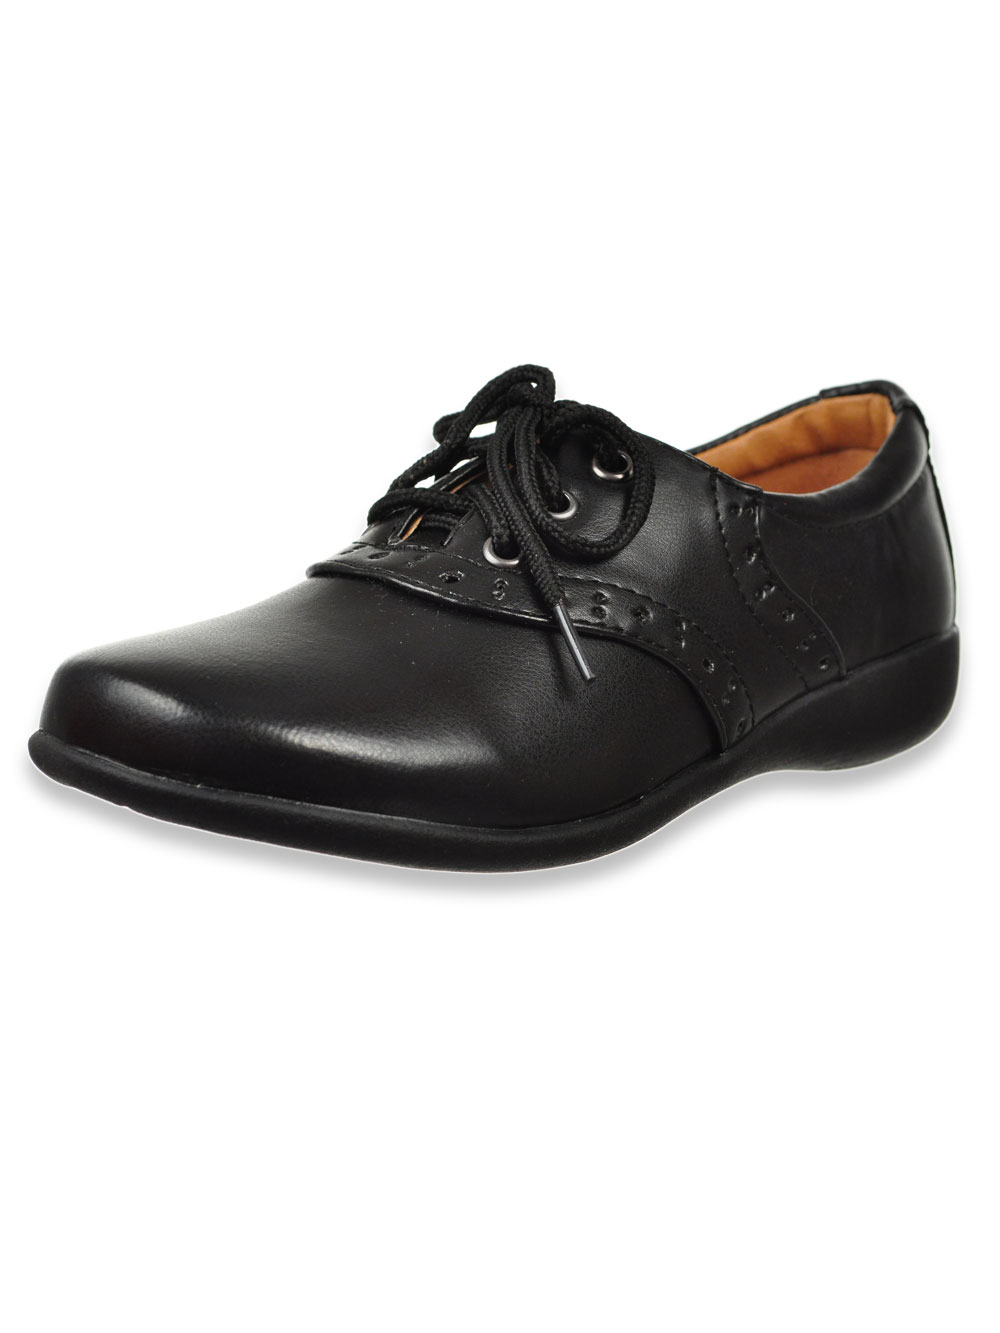 Girls' Lace-Up School Shoes